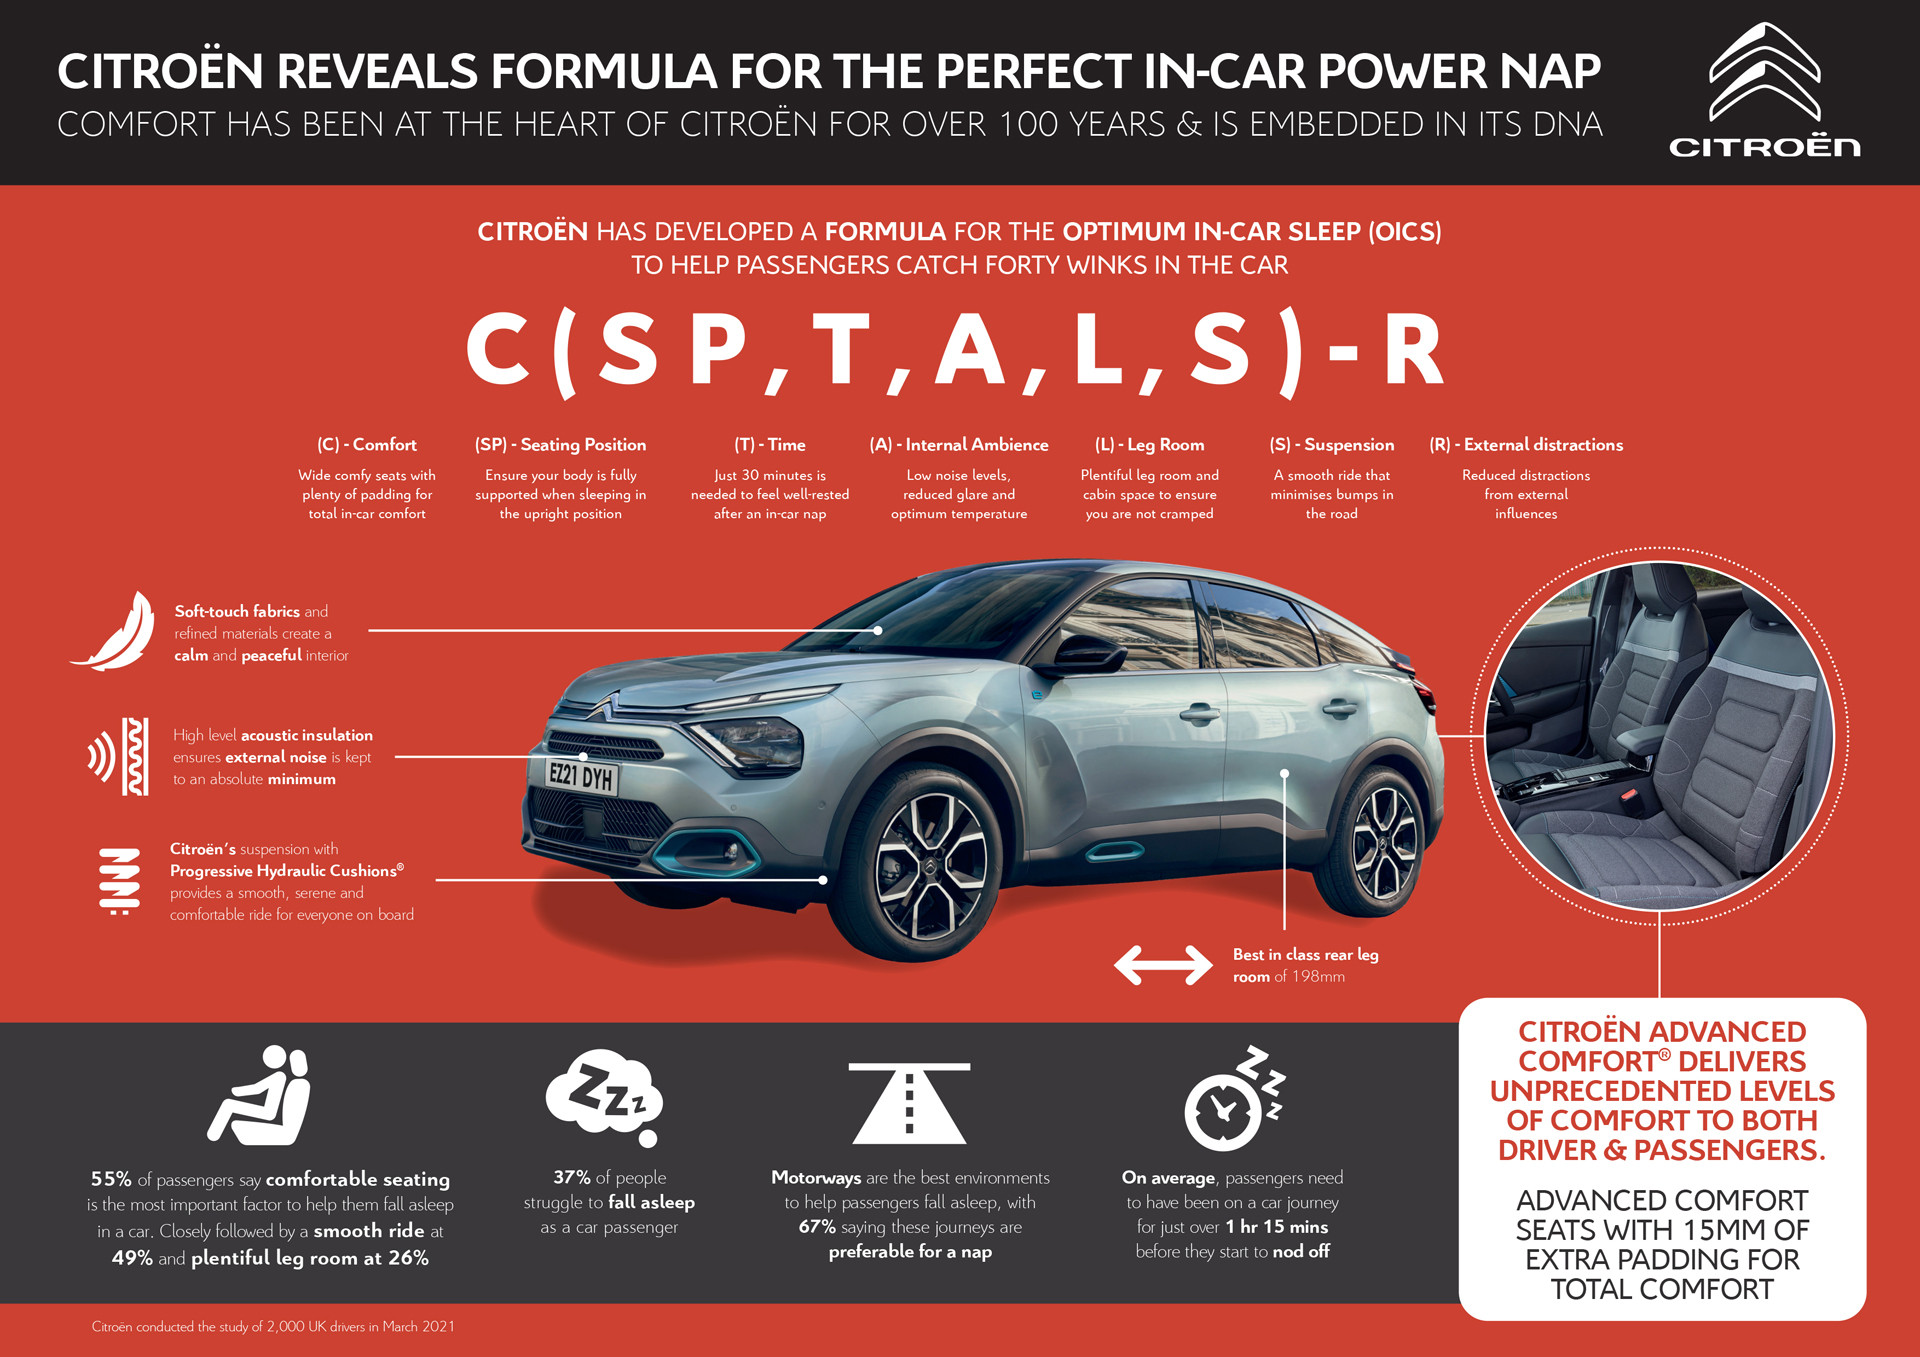 Citroën finds formula for the perfect in-car snooze